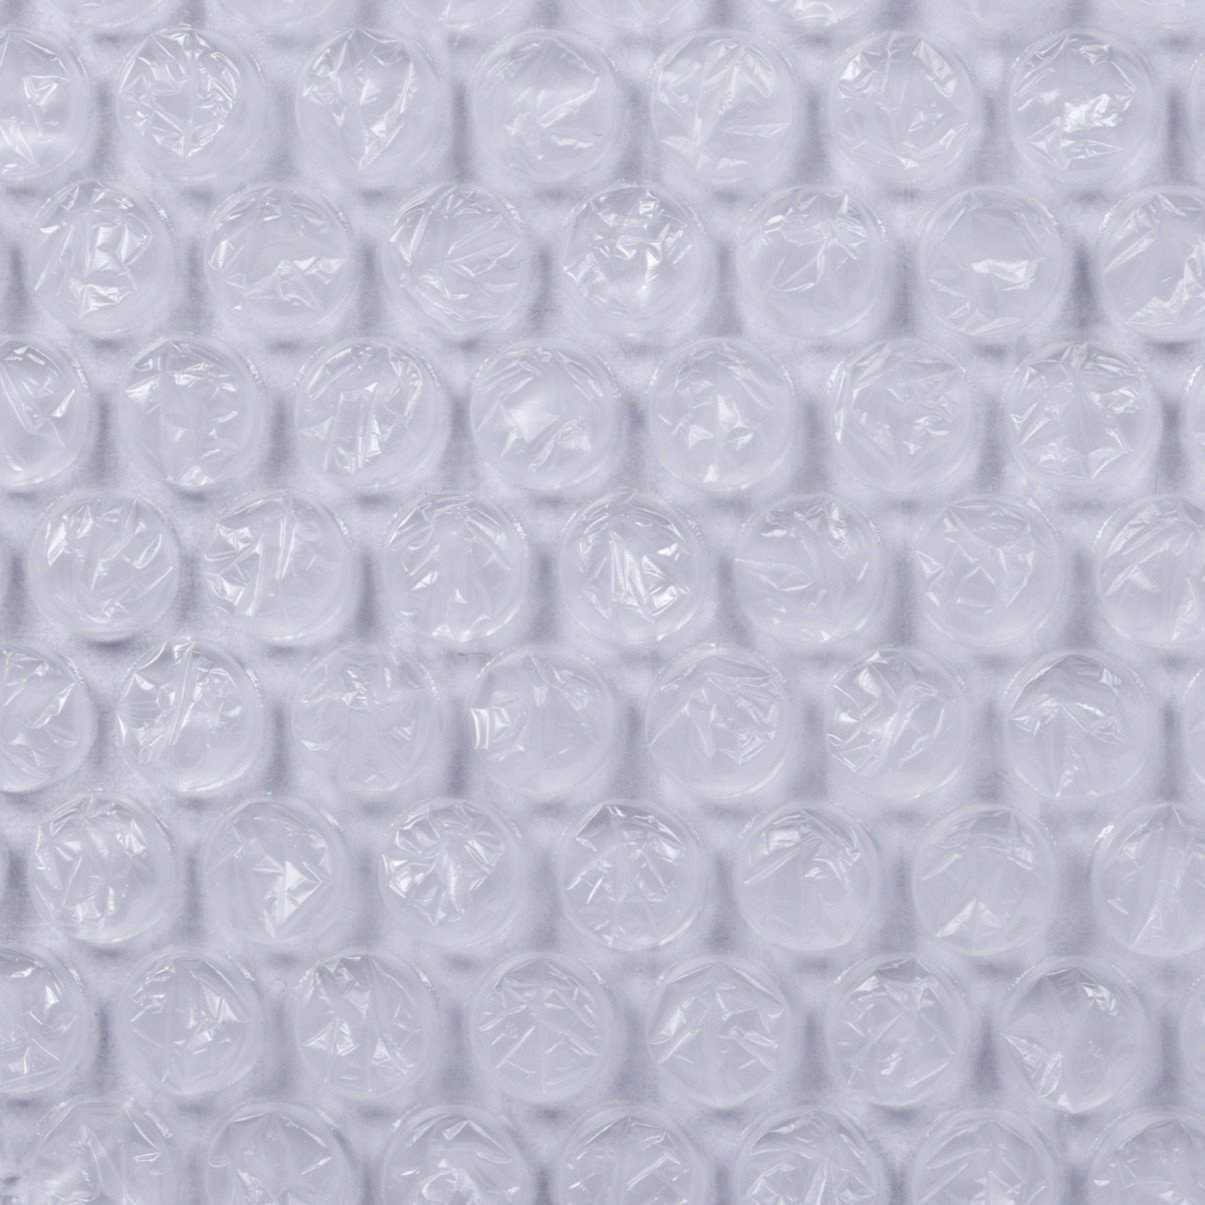 Duck Brand Bubble Wrap Roll, 3/16'' Original Bubble Cushioning, 12'' x 150', Perforated Every 12'' (284054) by Duck (Image #2)